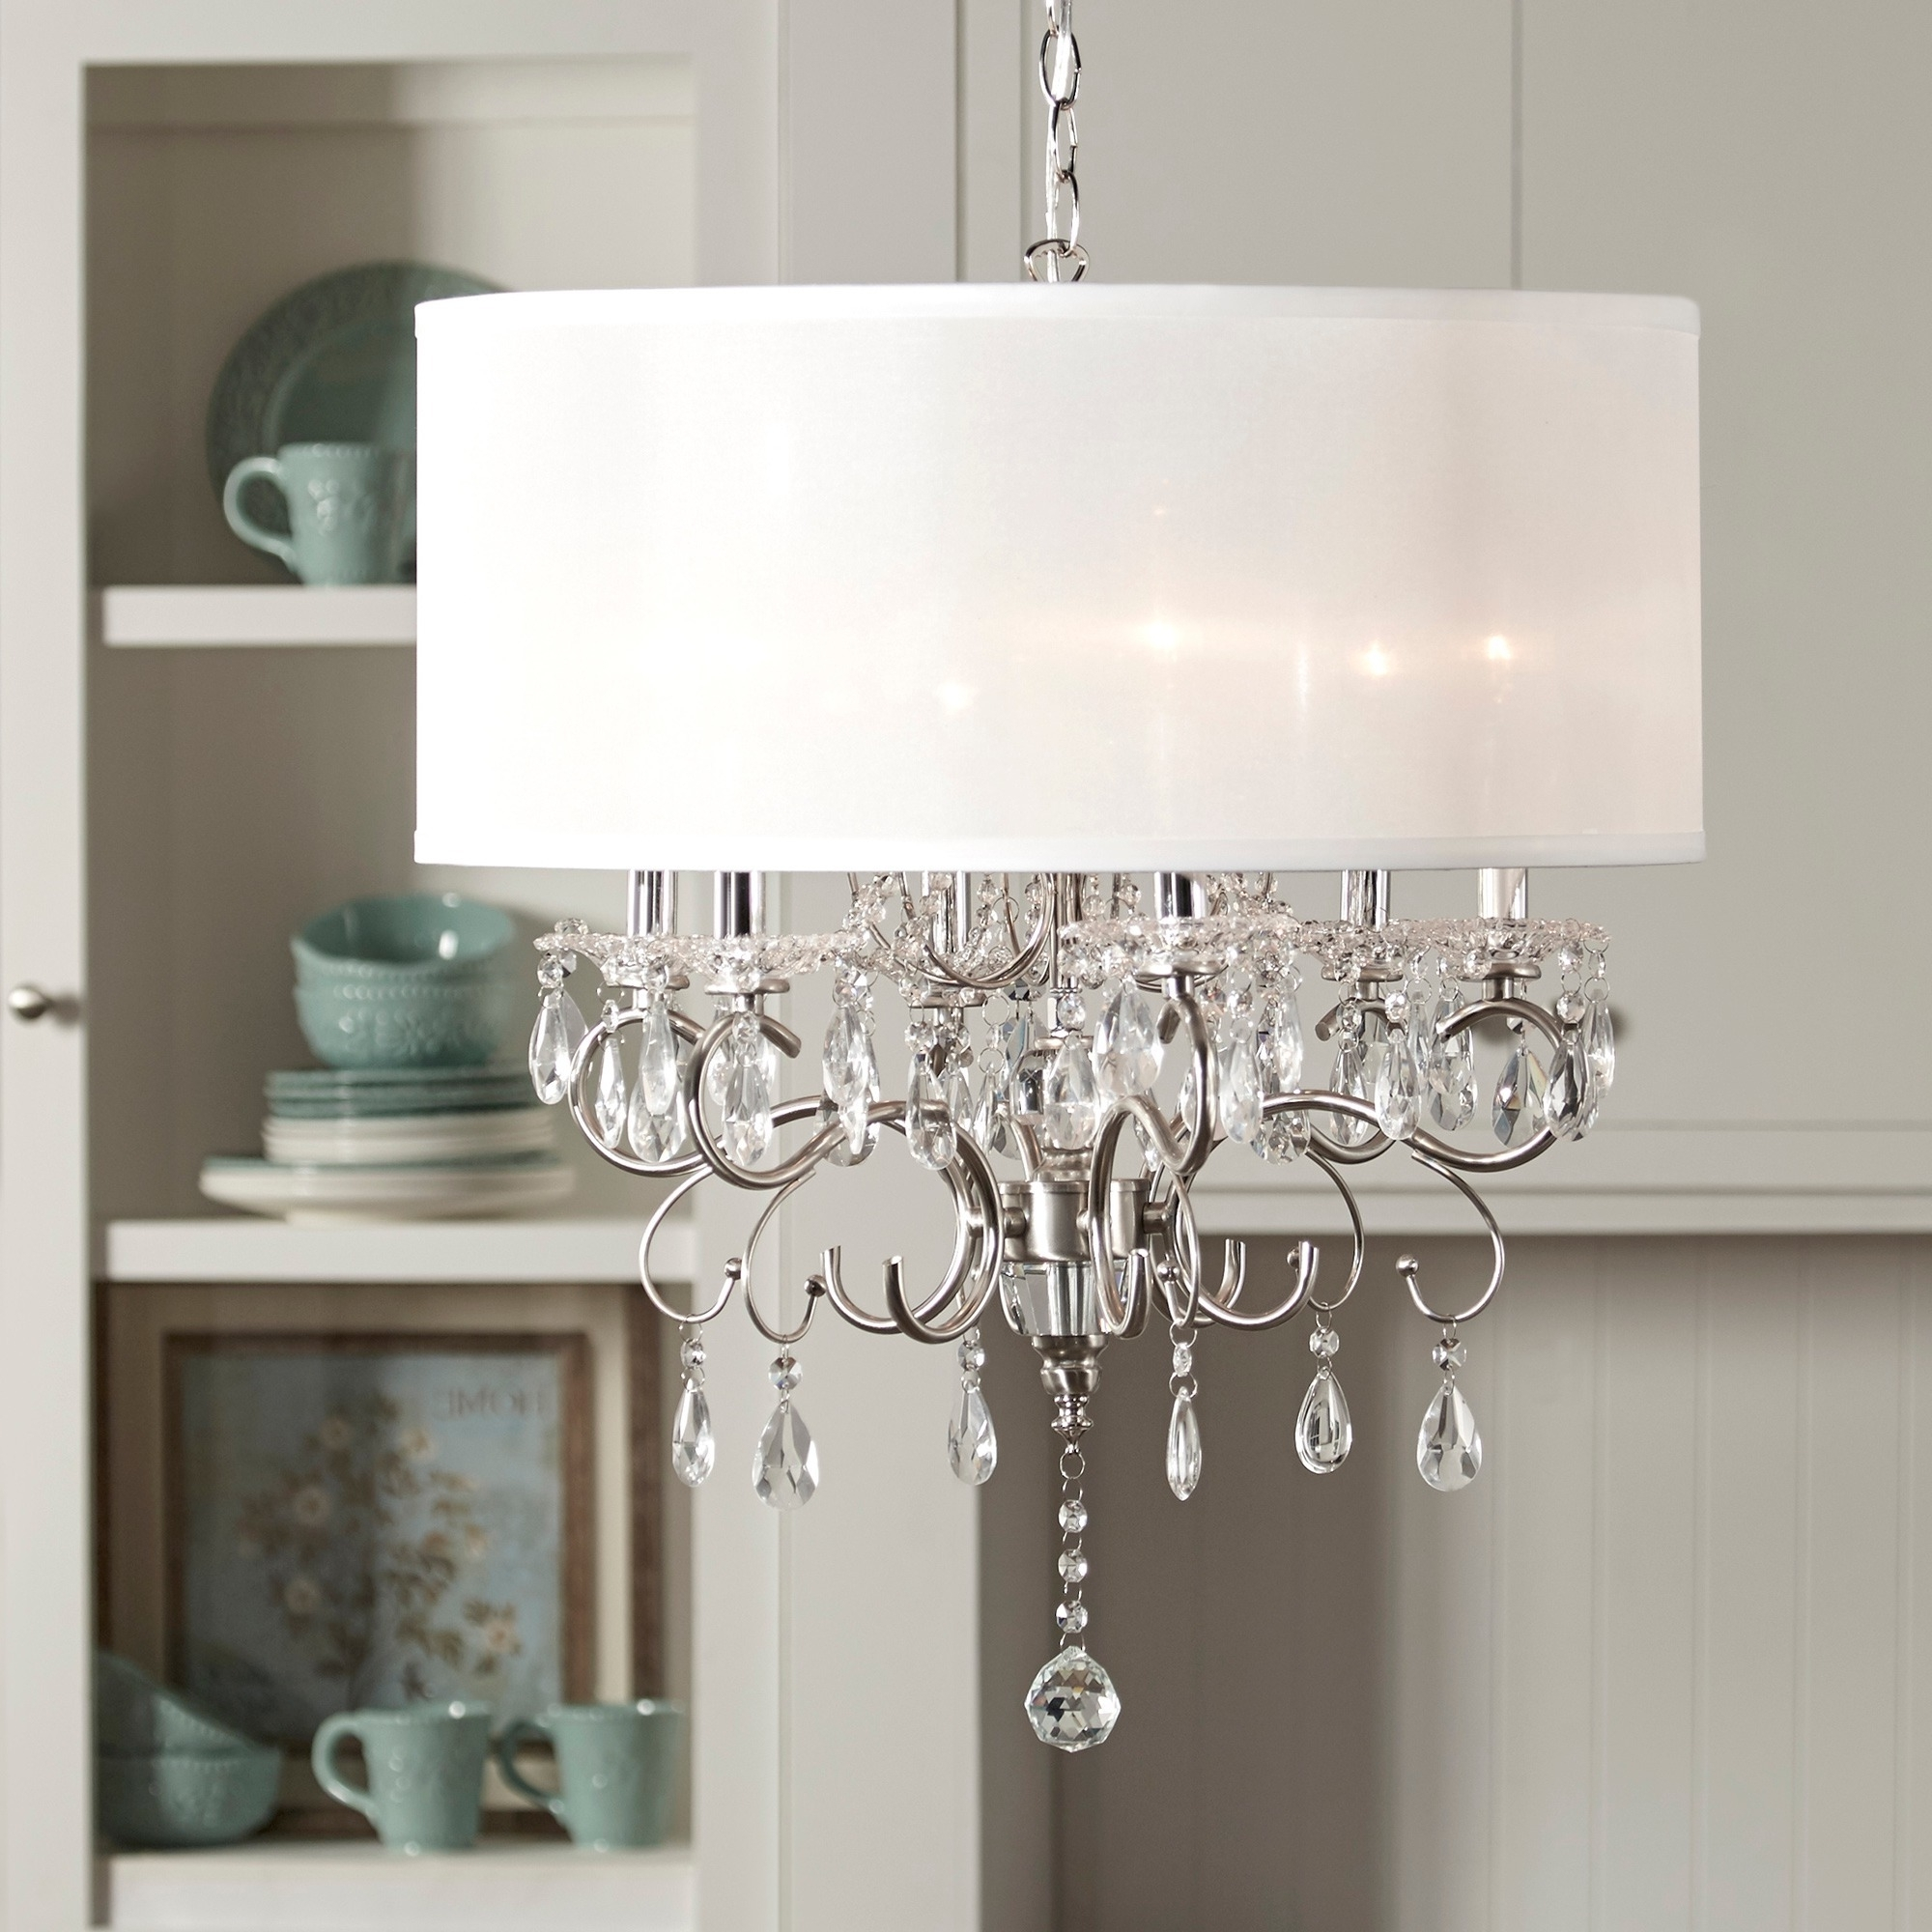 Chandelier Light Shades With Well Known Excellent Light Shades Of Grey Html Purple Names Shade Blue (View 14 of 15)